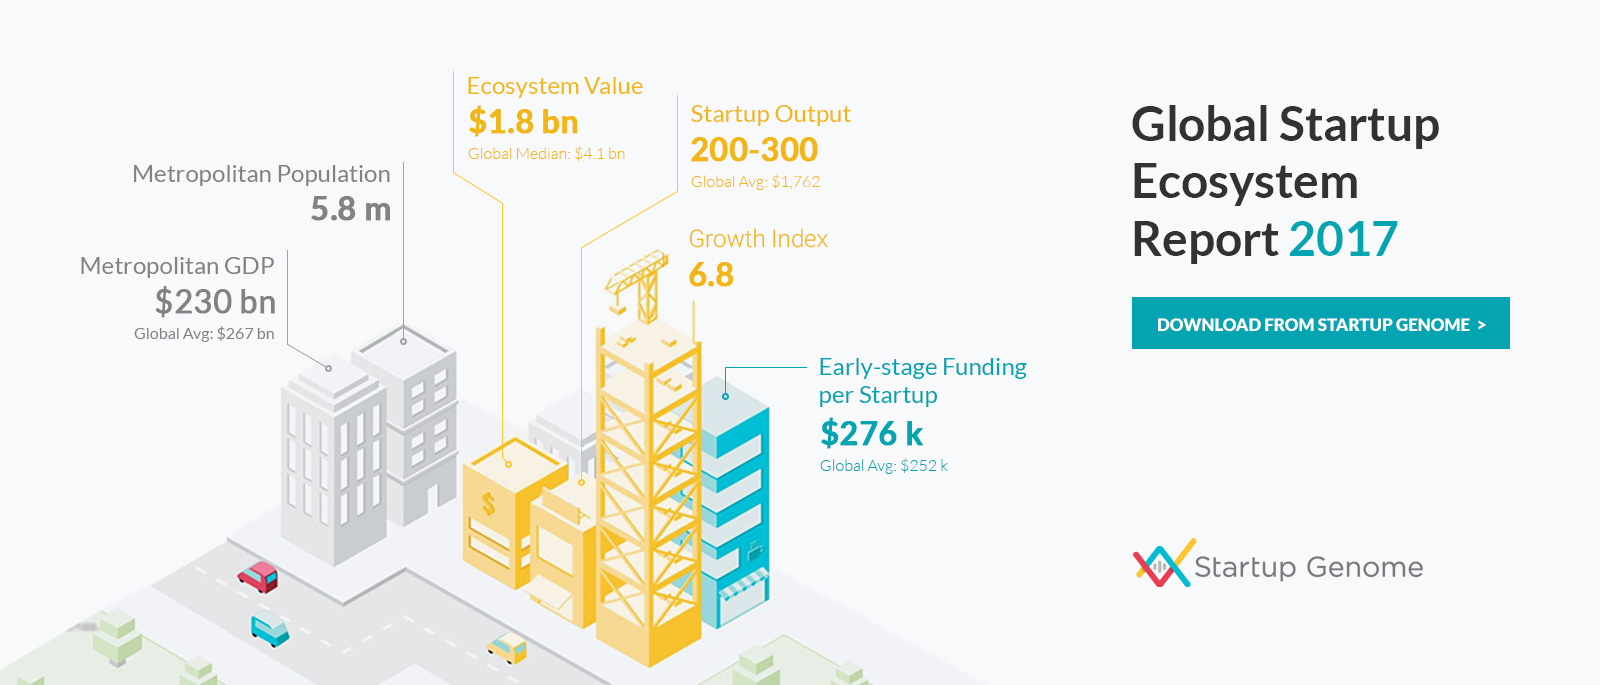 Global Startup Ecosystem 2017 - Report